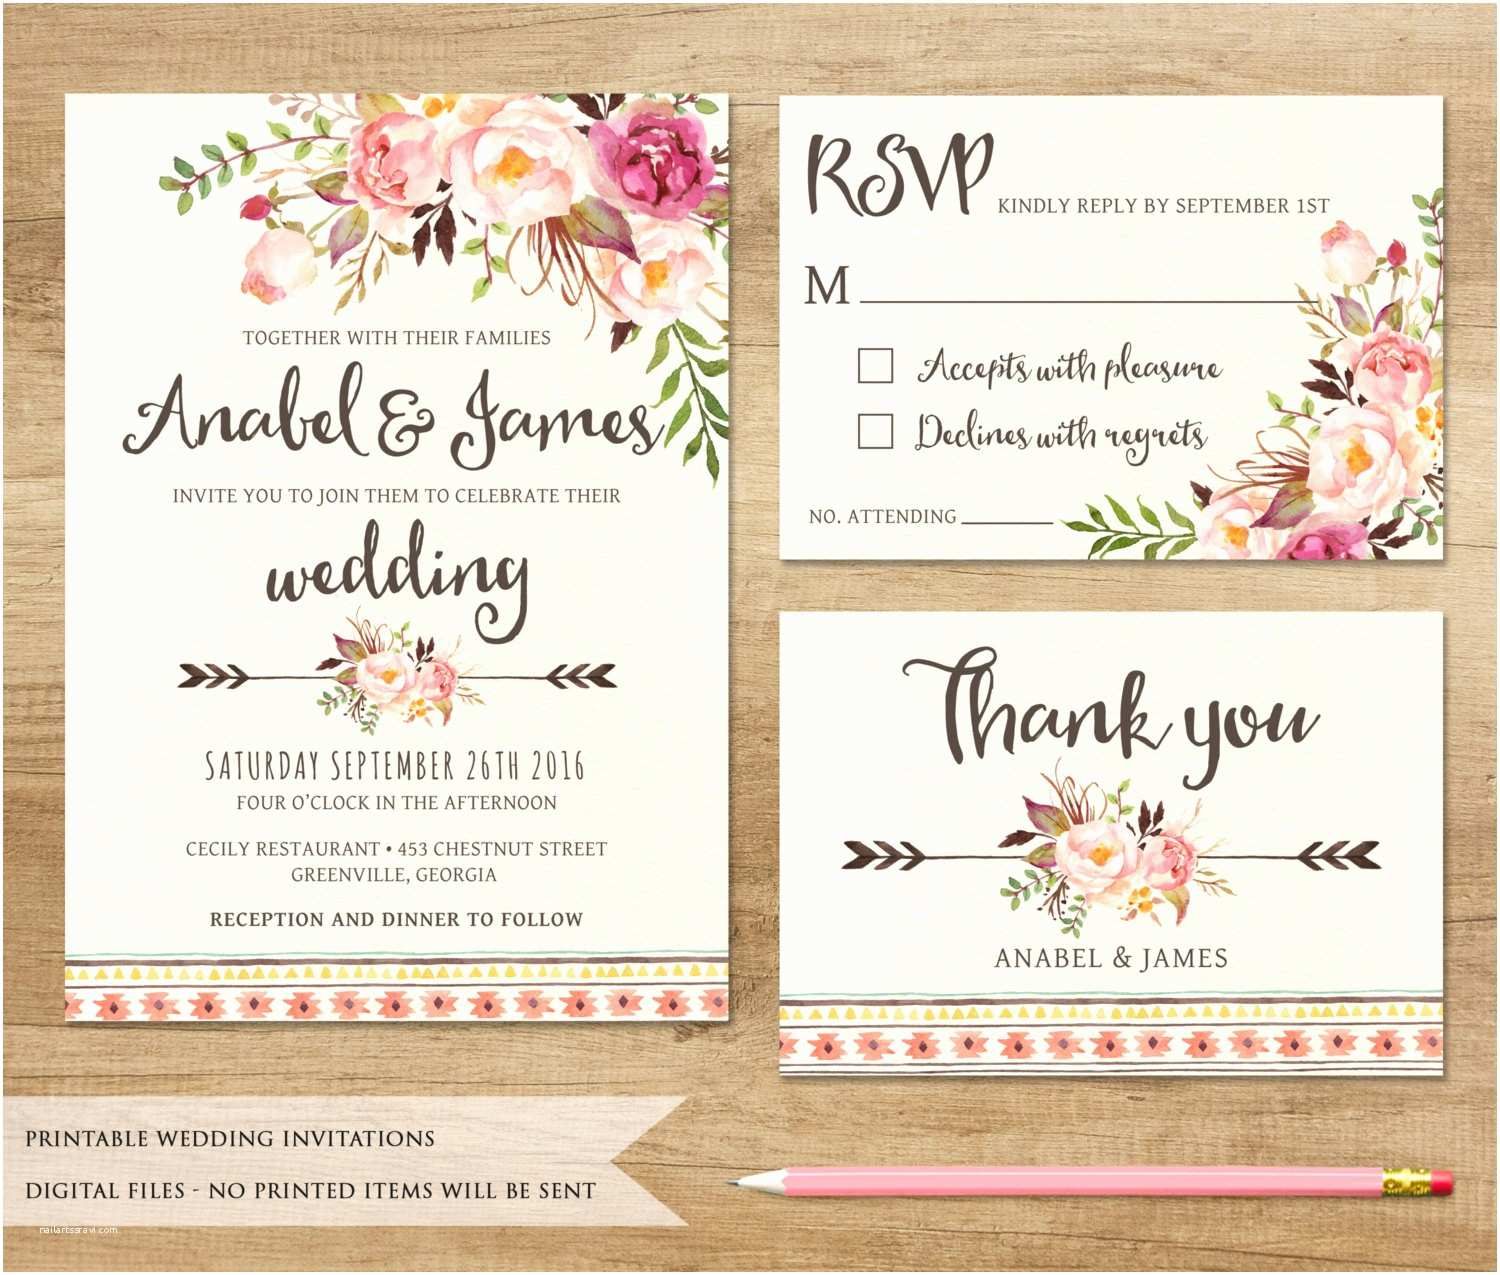 Rustic Wedding Invitations Online Floral Wedding Invitation Printable Wedding Invitation